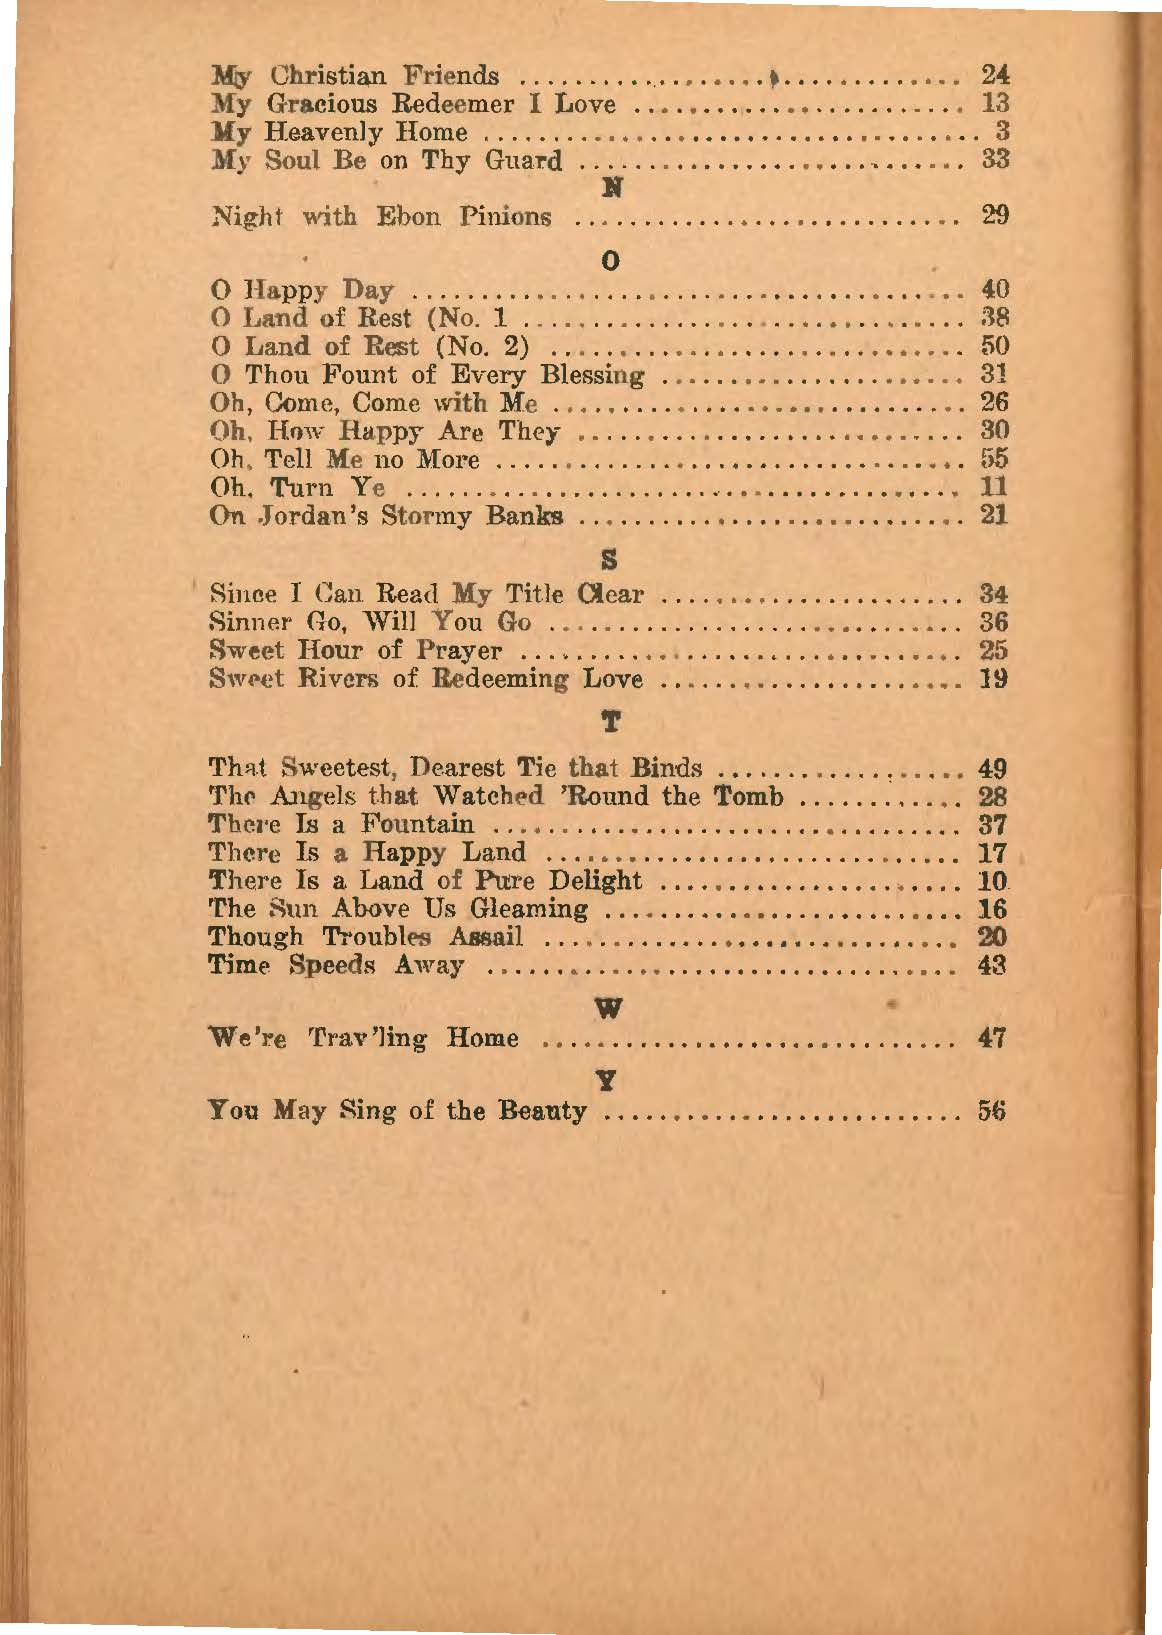 Earnest C. Love, International Melodies, 1924, index of first lines